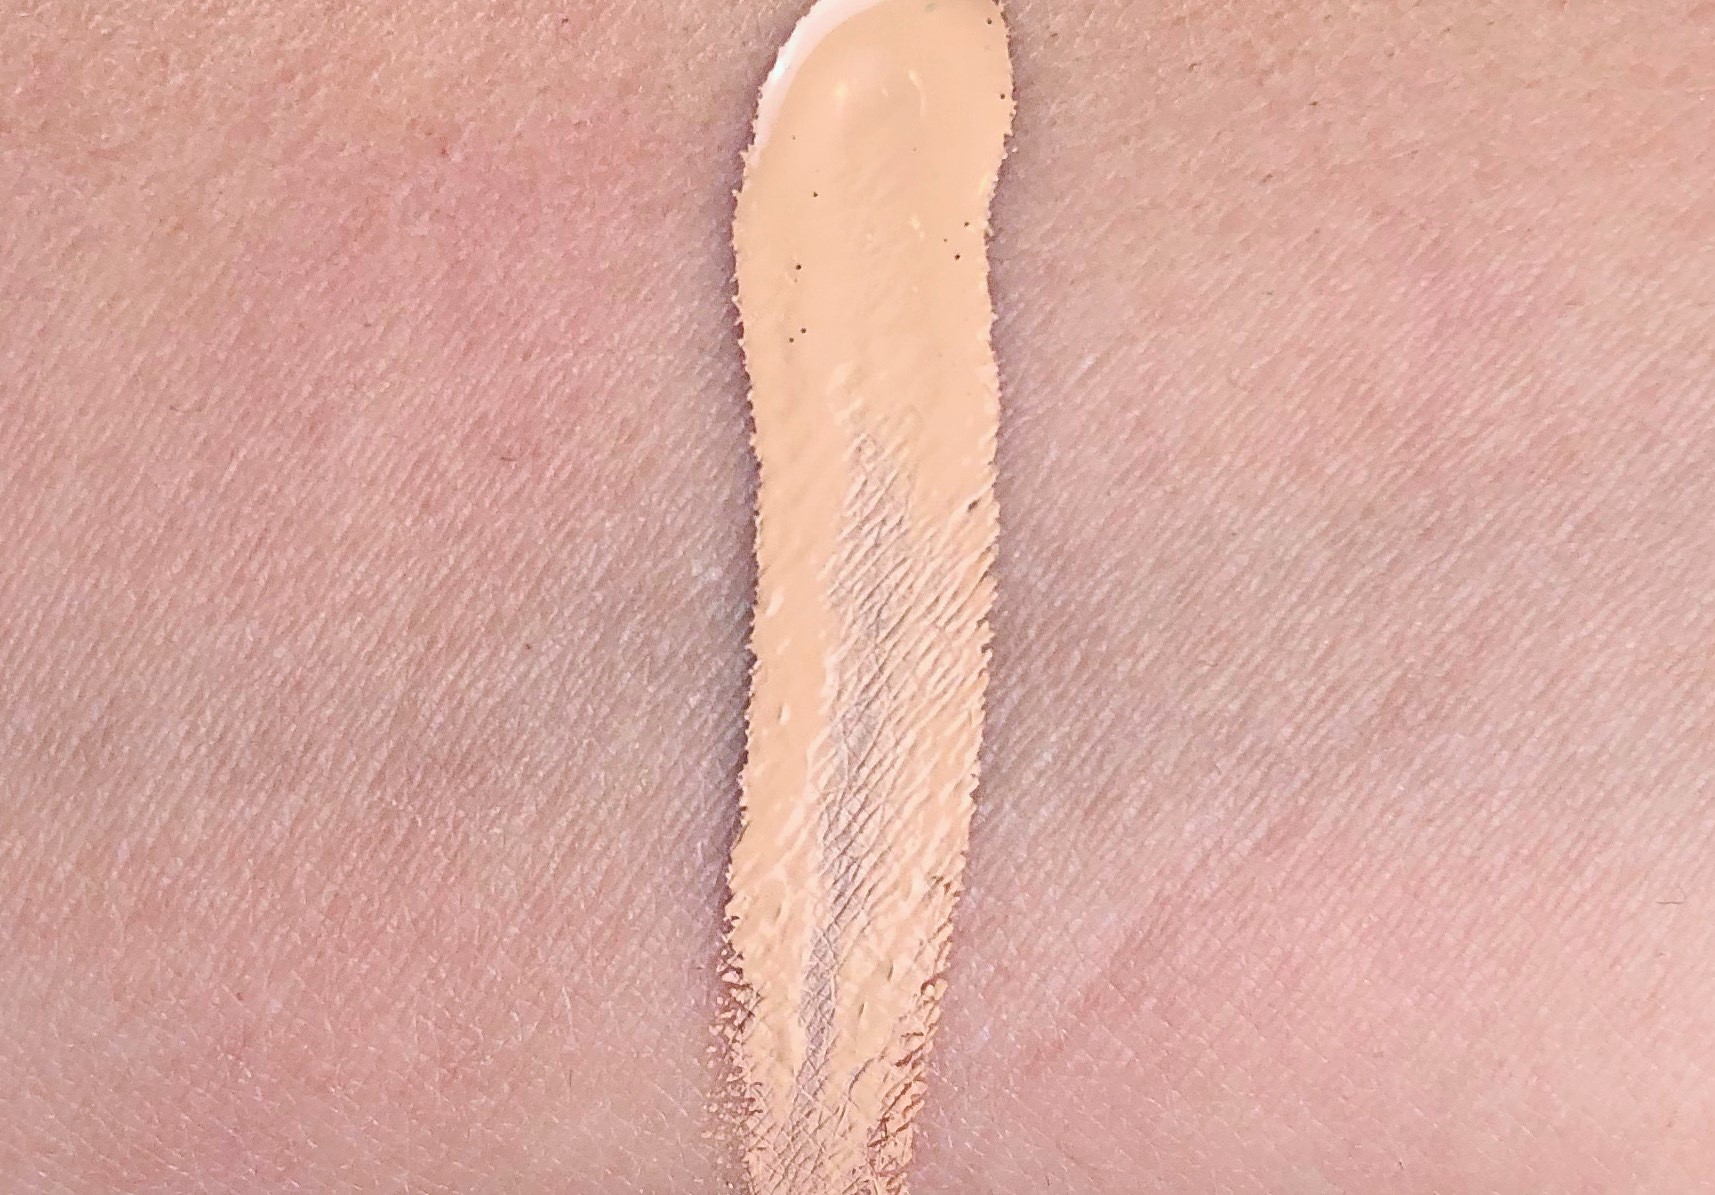 Review Too Faced Born This Way Multi-Use Sculpting Concealer (8)